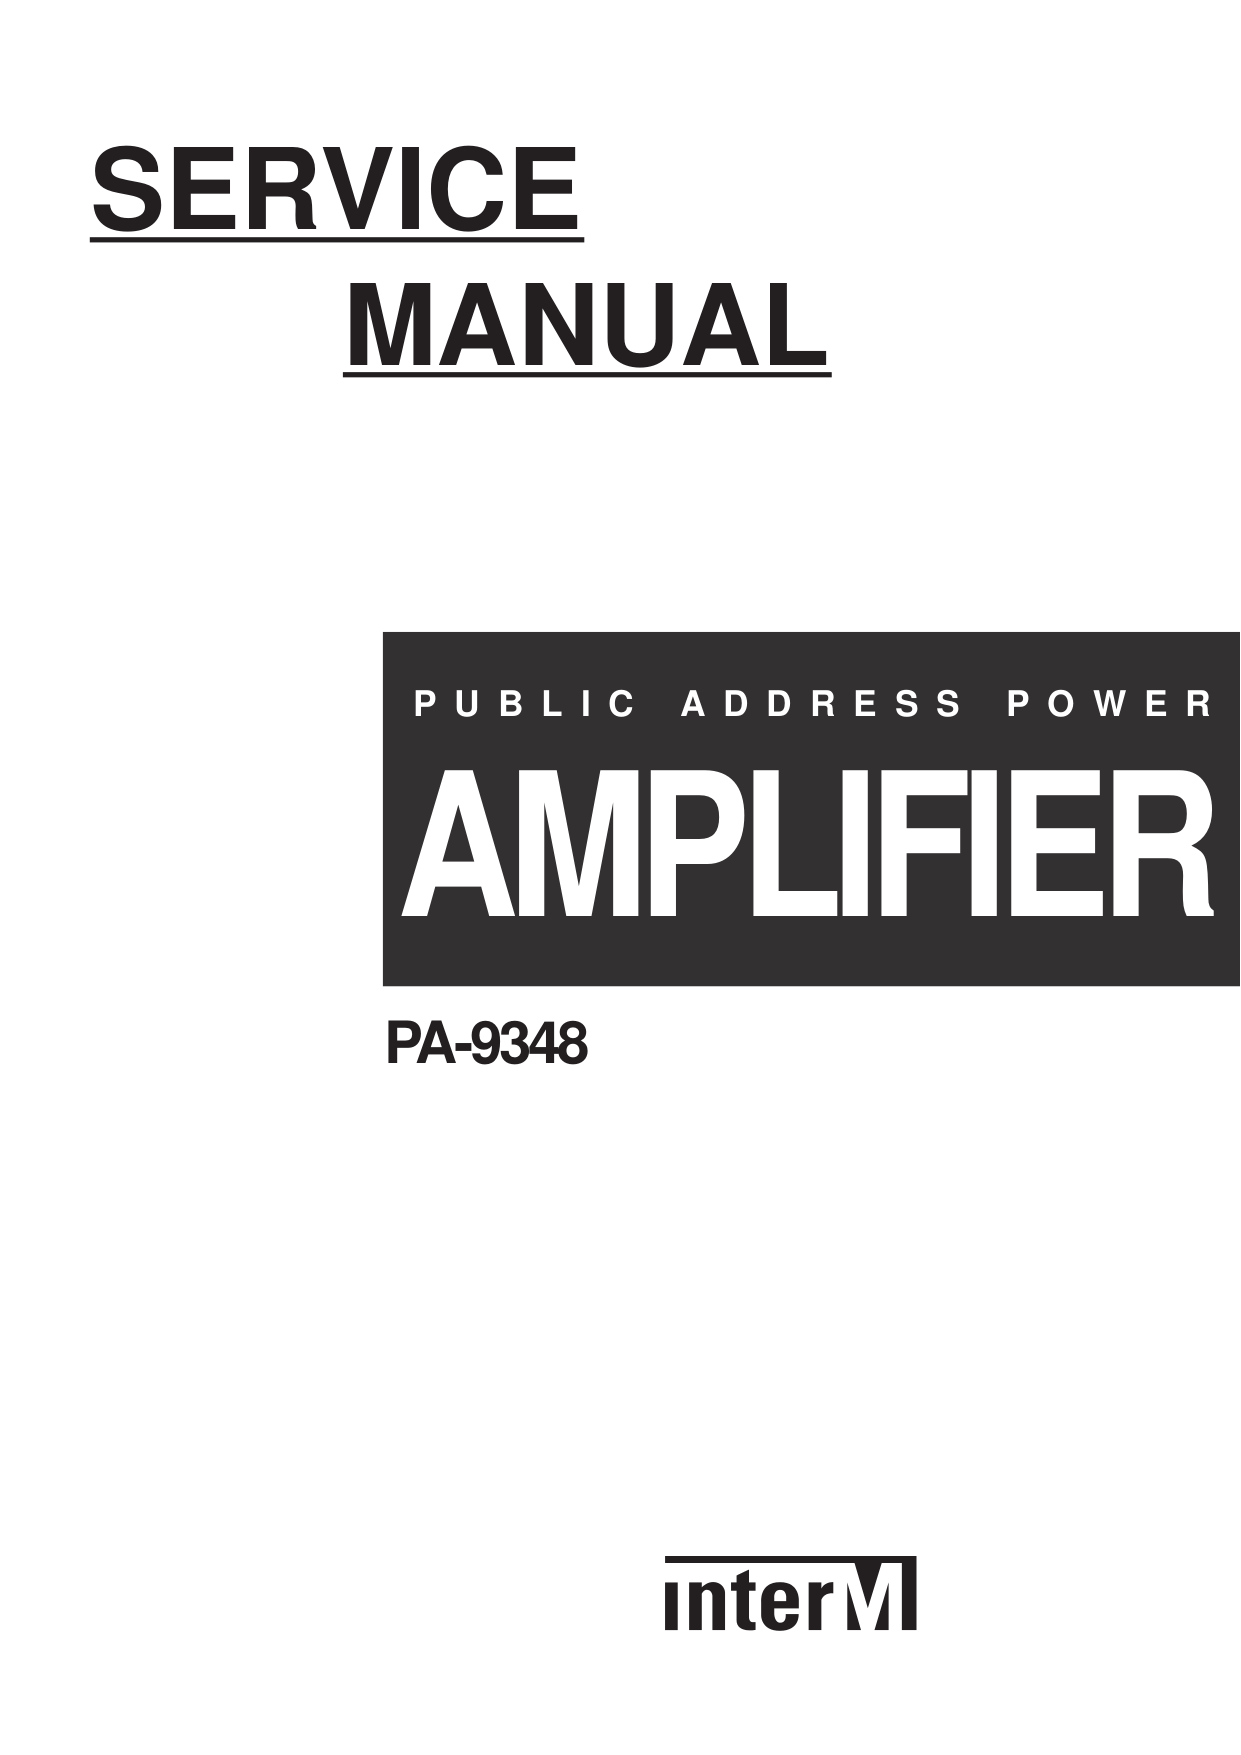 Download free pdf for Inter-m PA-9348 Amp manual